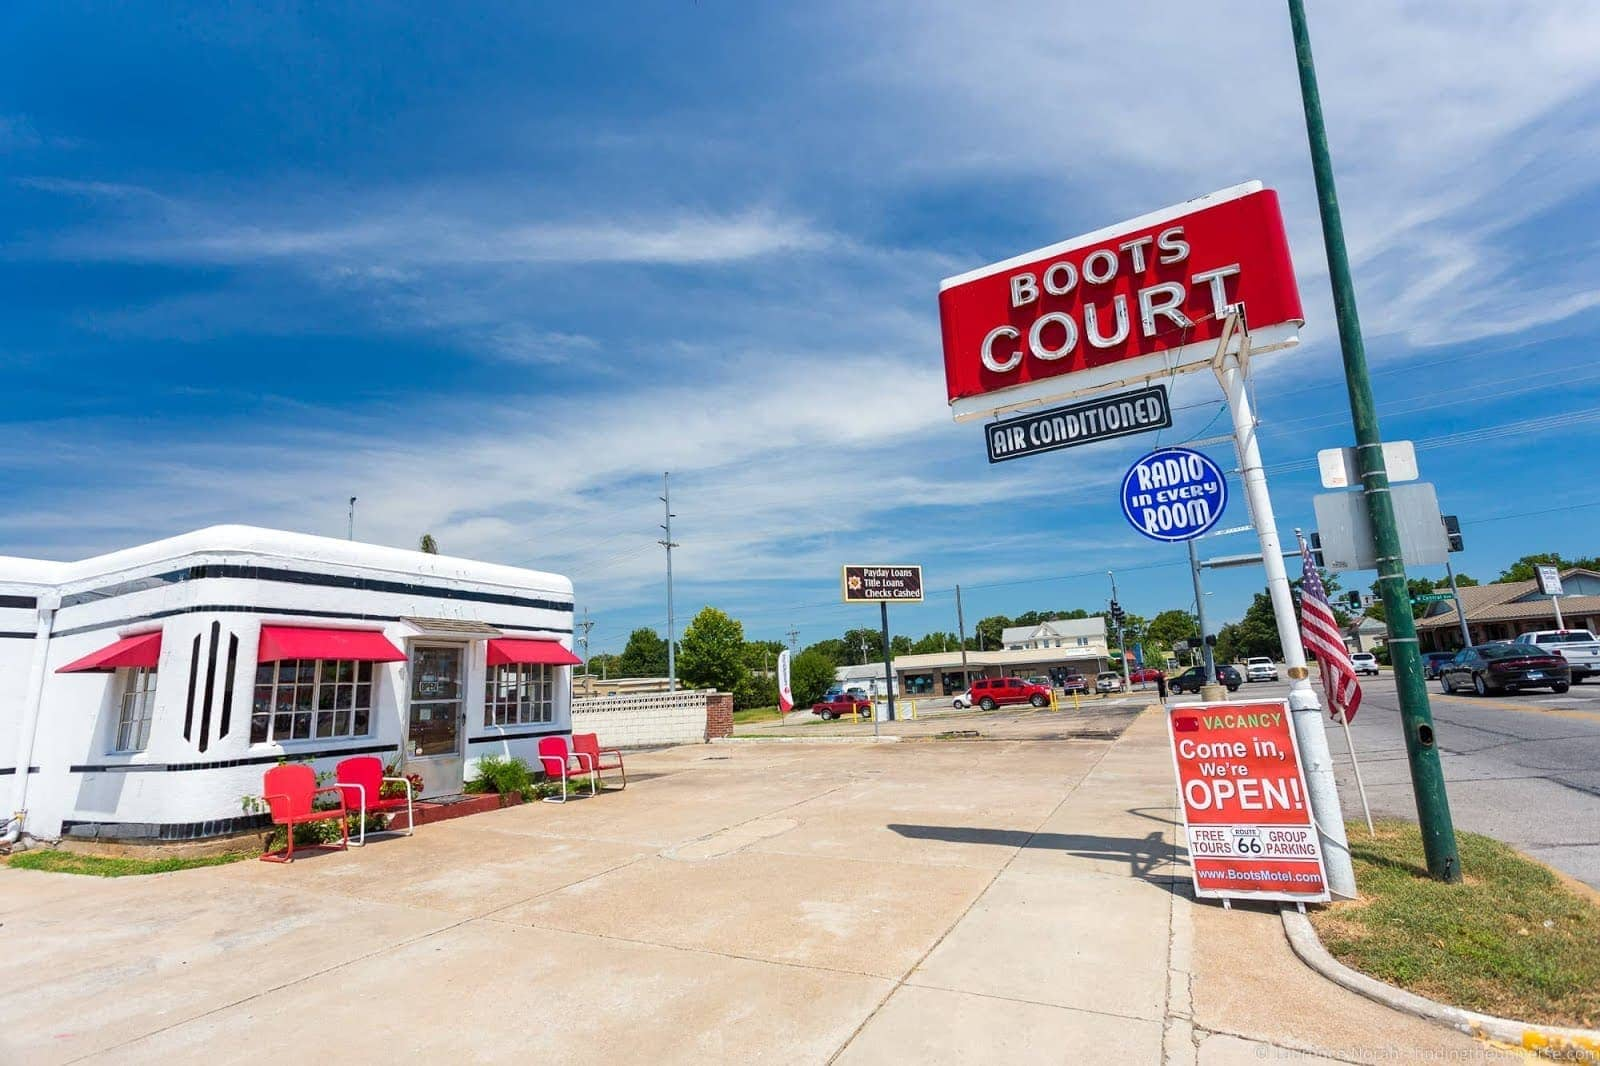 Route 66 Missouri - Boots Court Motel Carthage_by_Laurence Norah